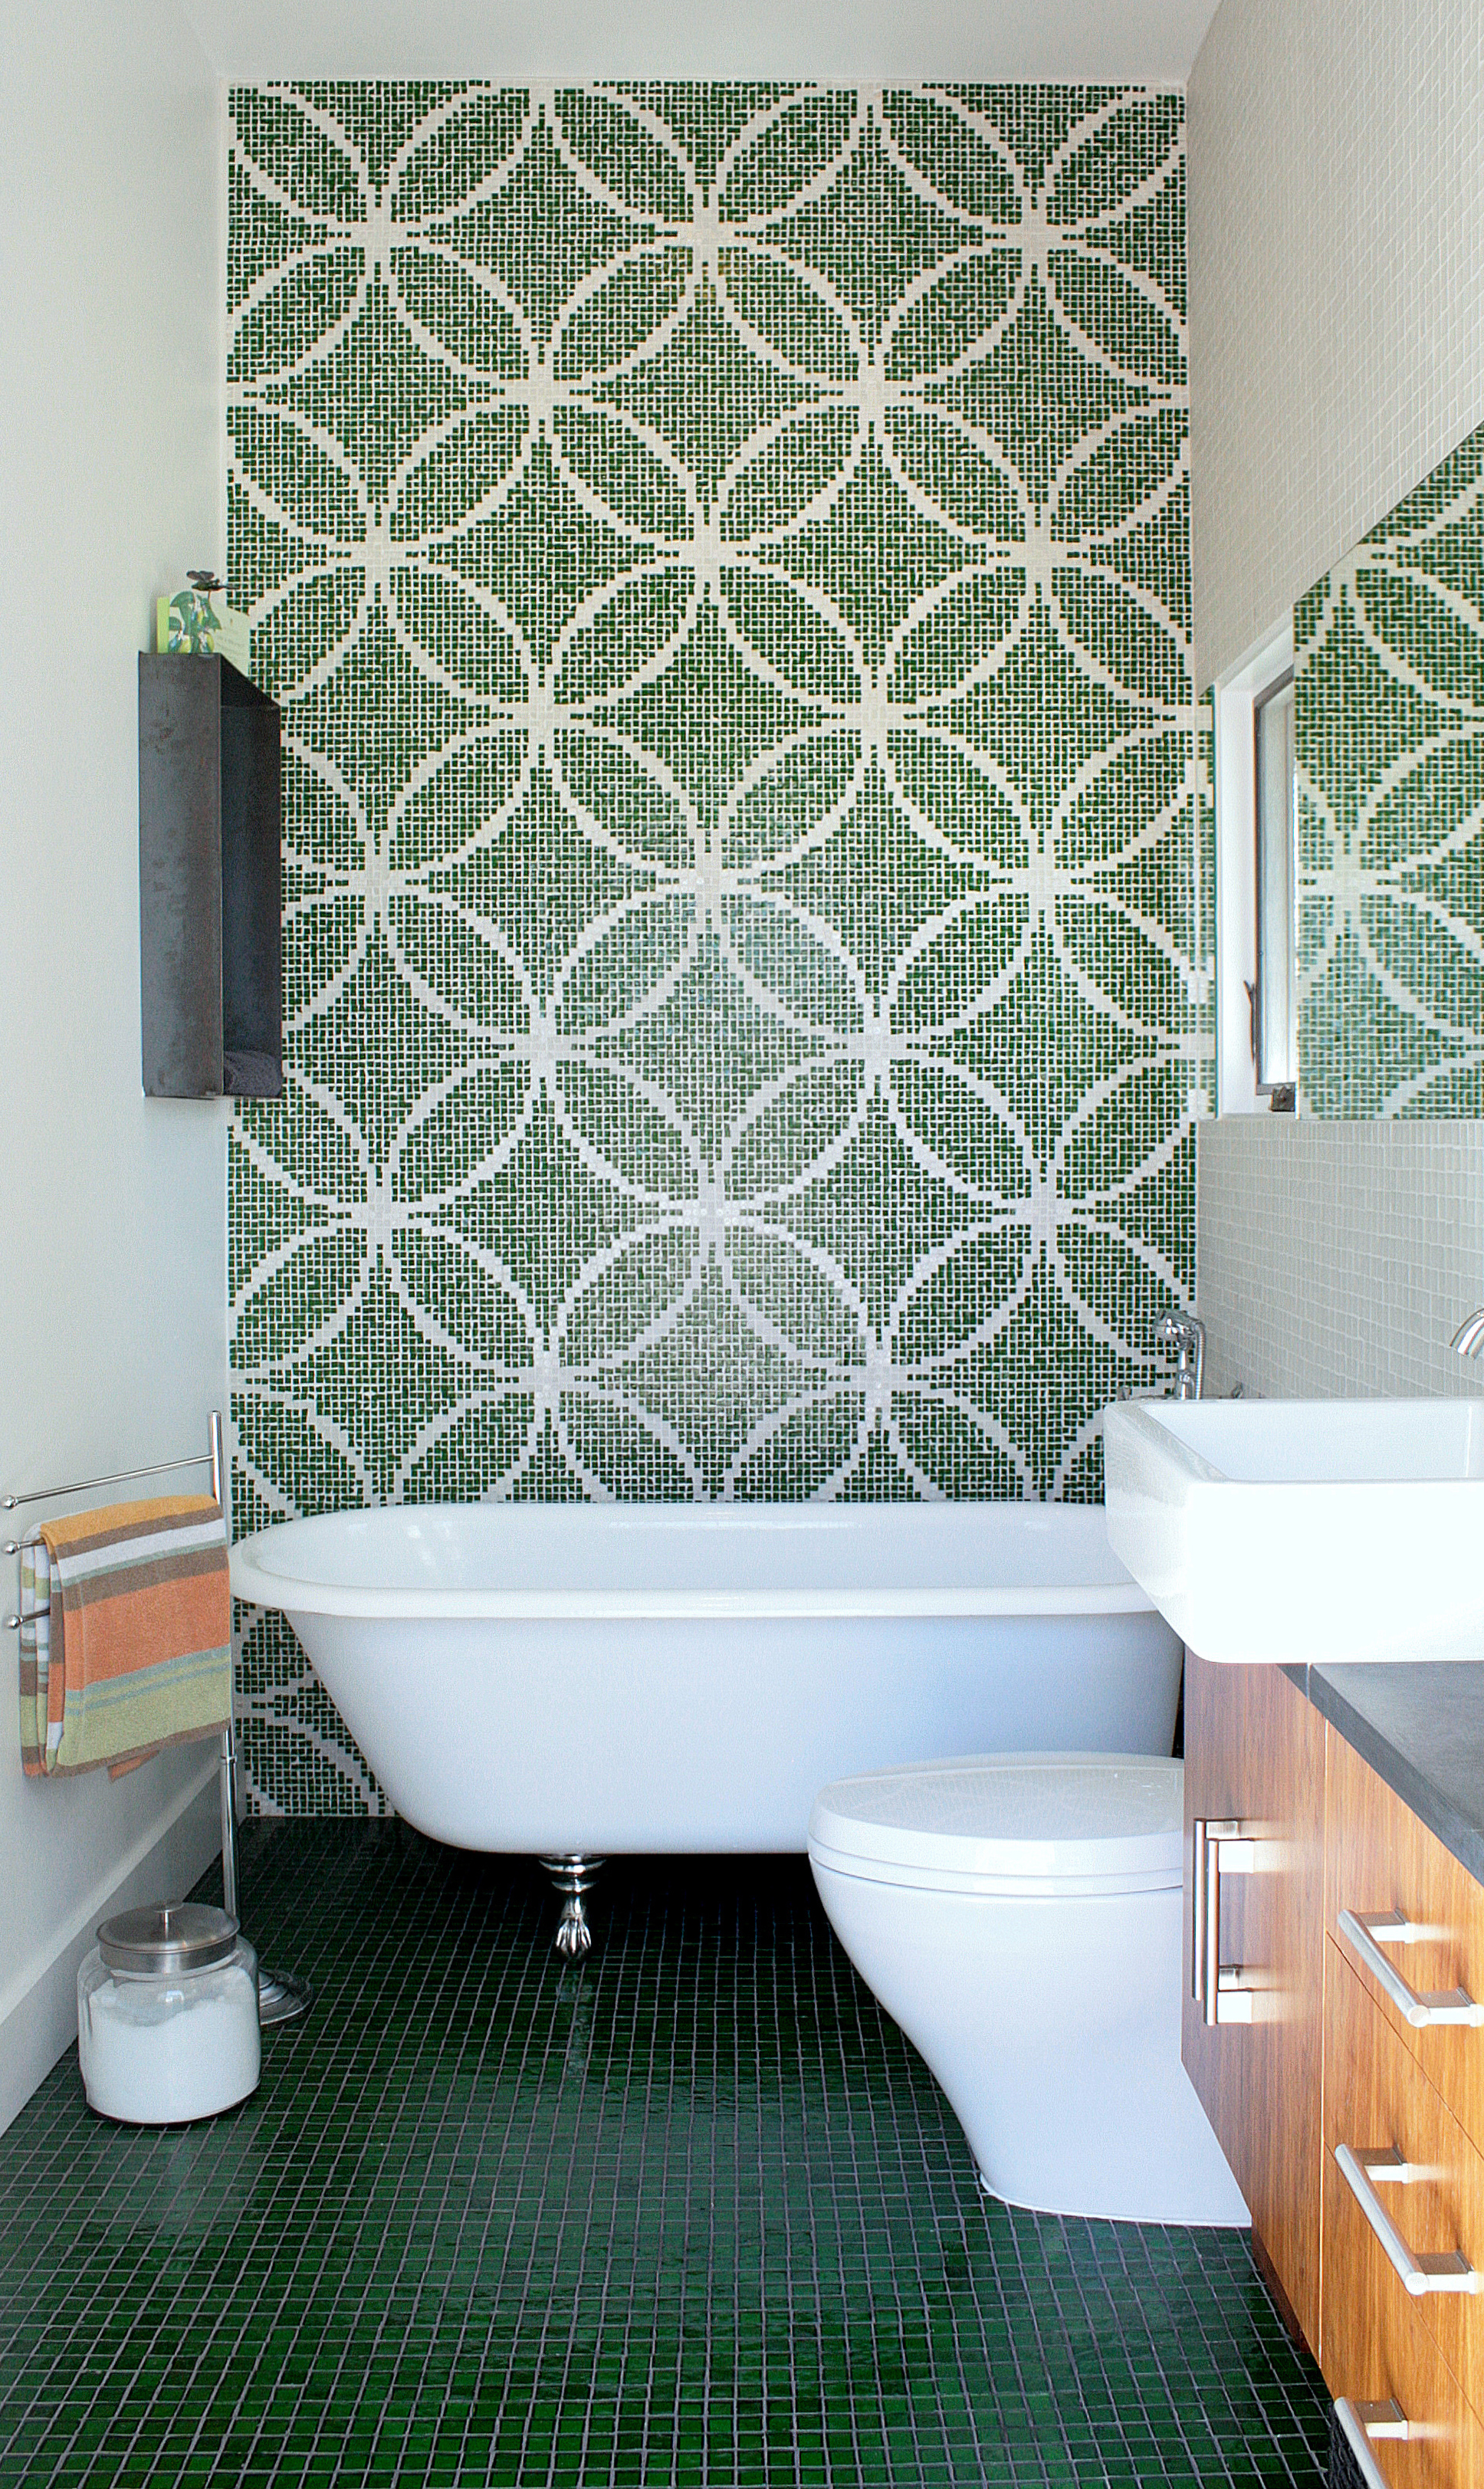 Waterproof Wallpaper for Bathrooms photo - 7